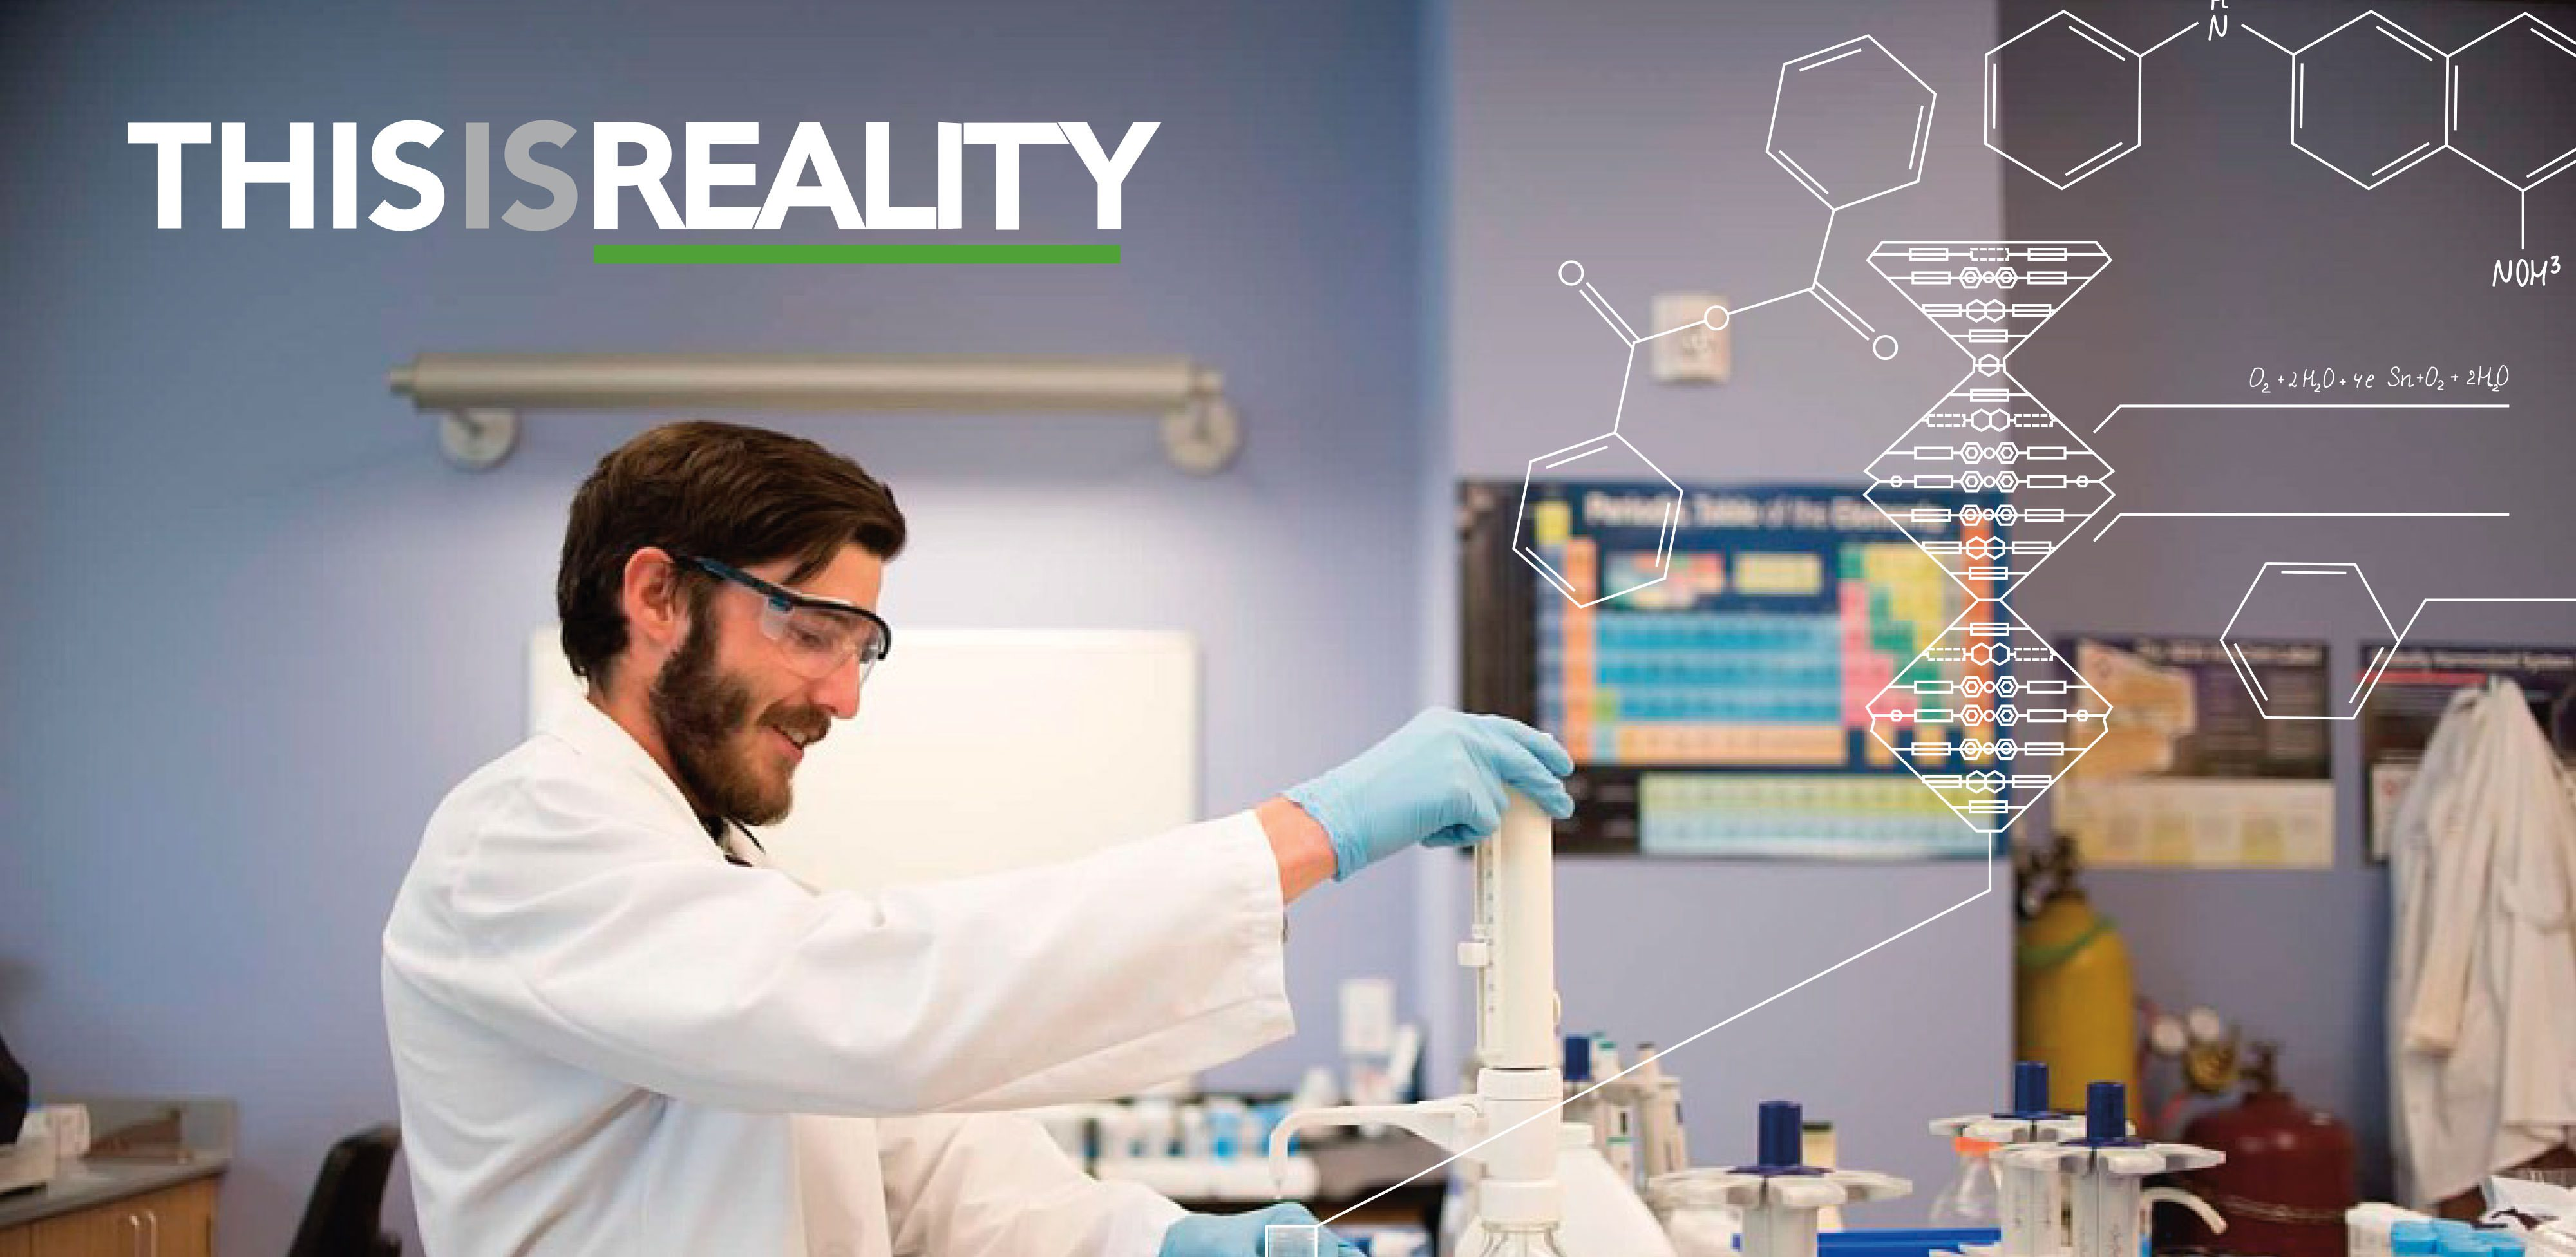 A photo of a man in a laboratory with the CAFES slogan This is Reality